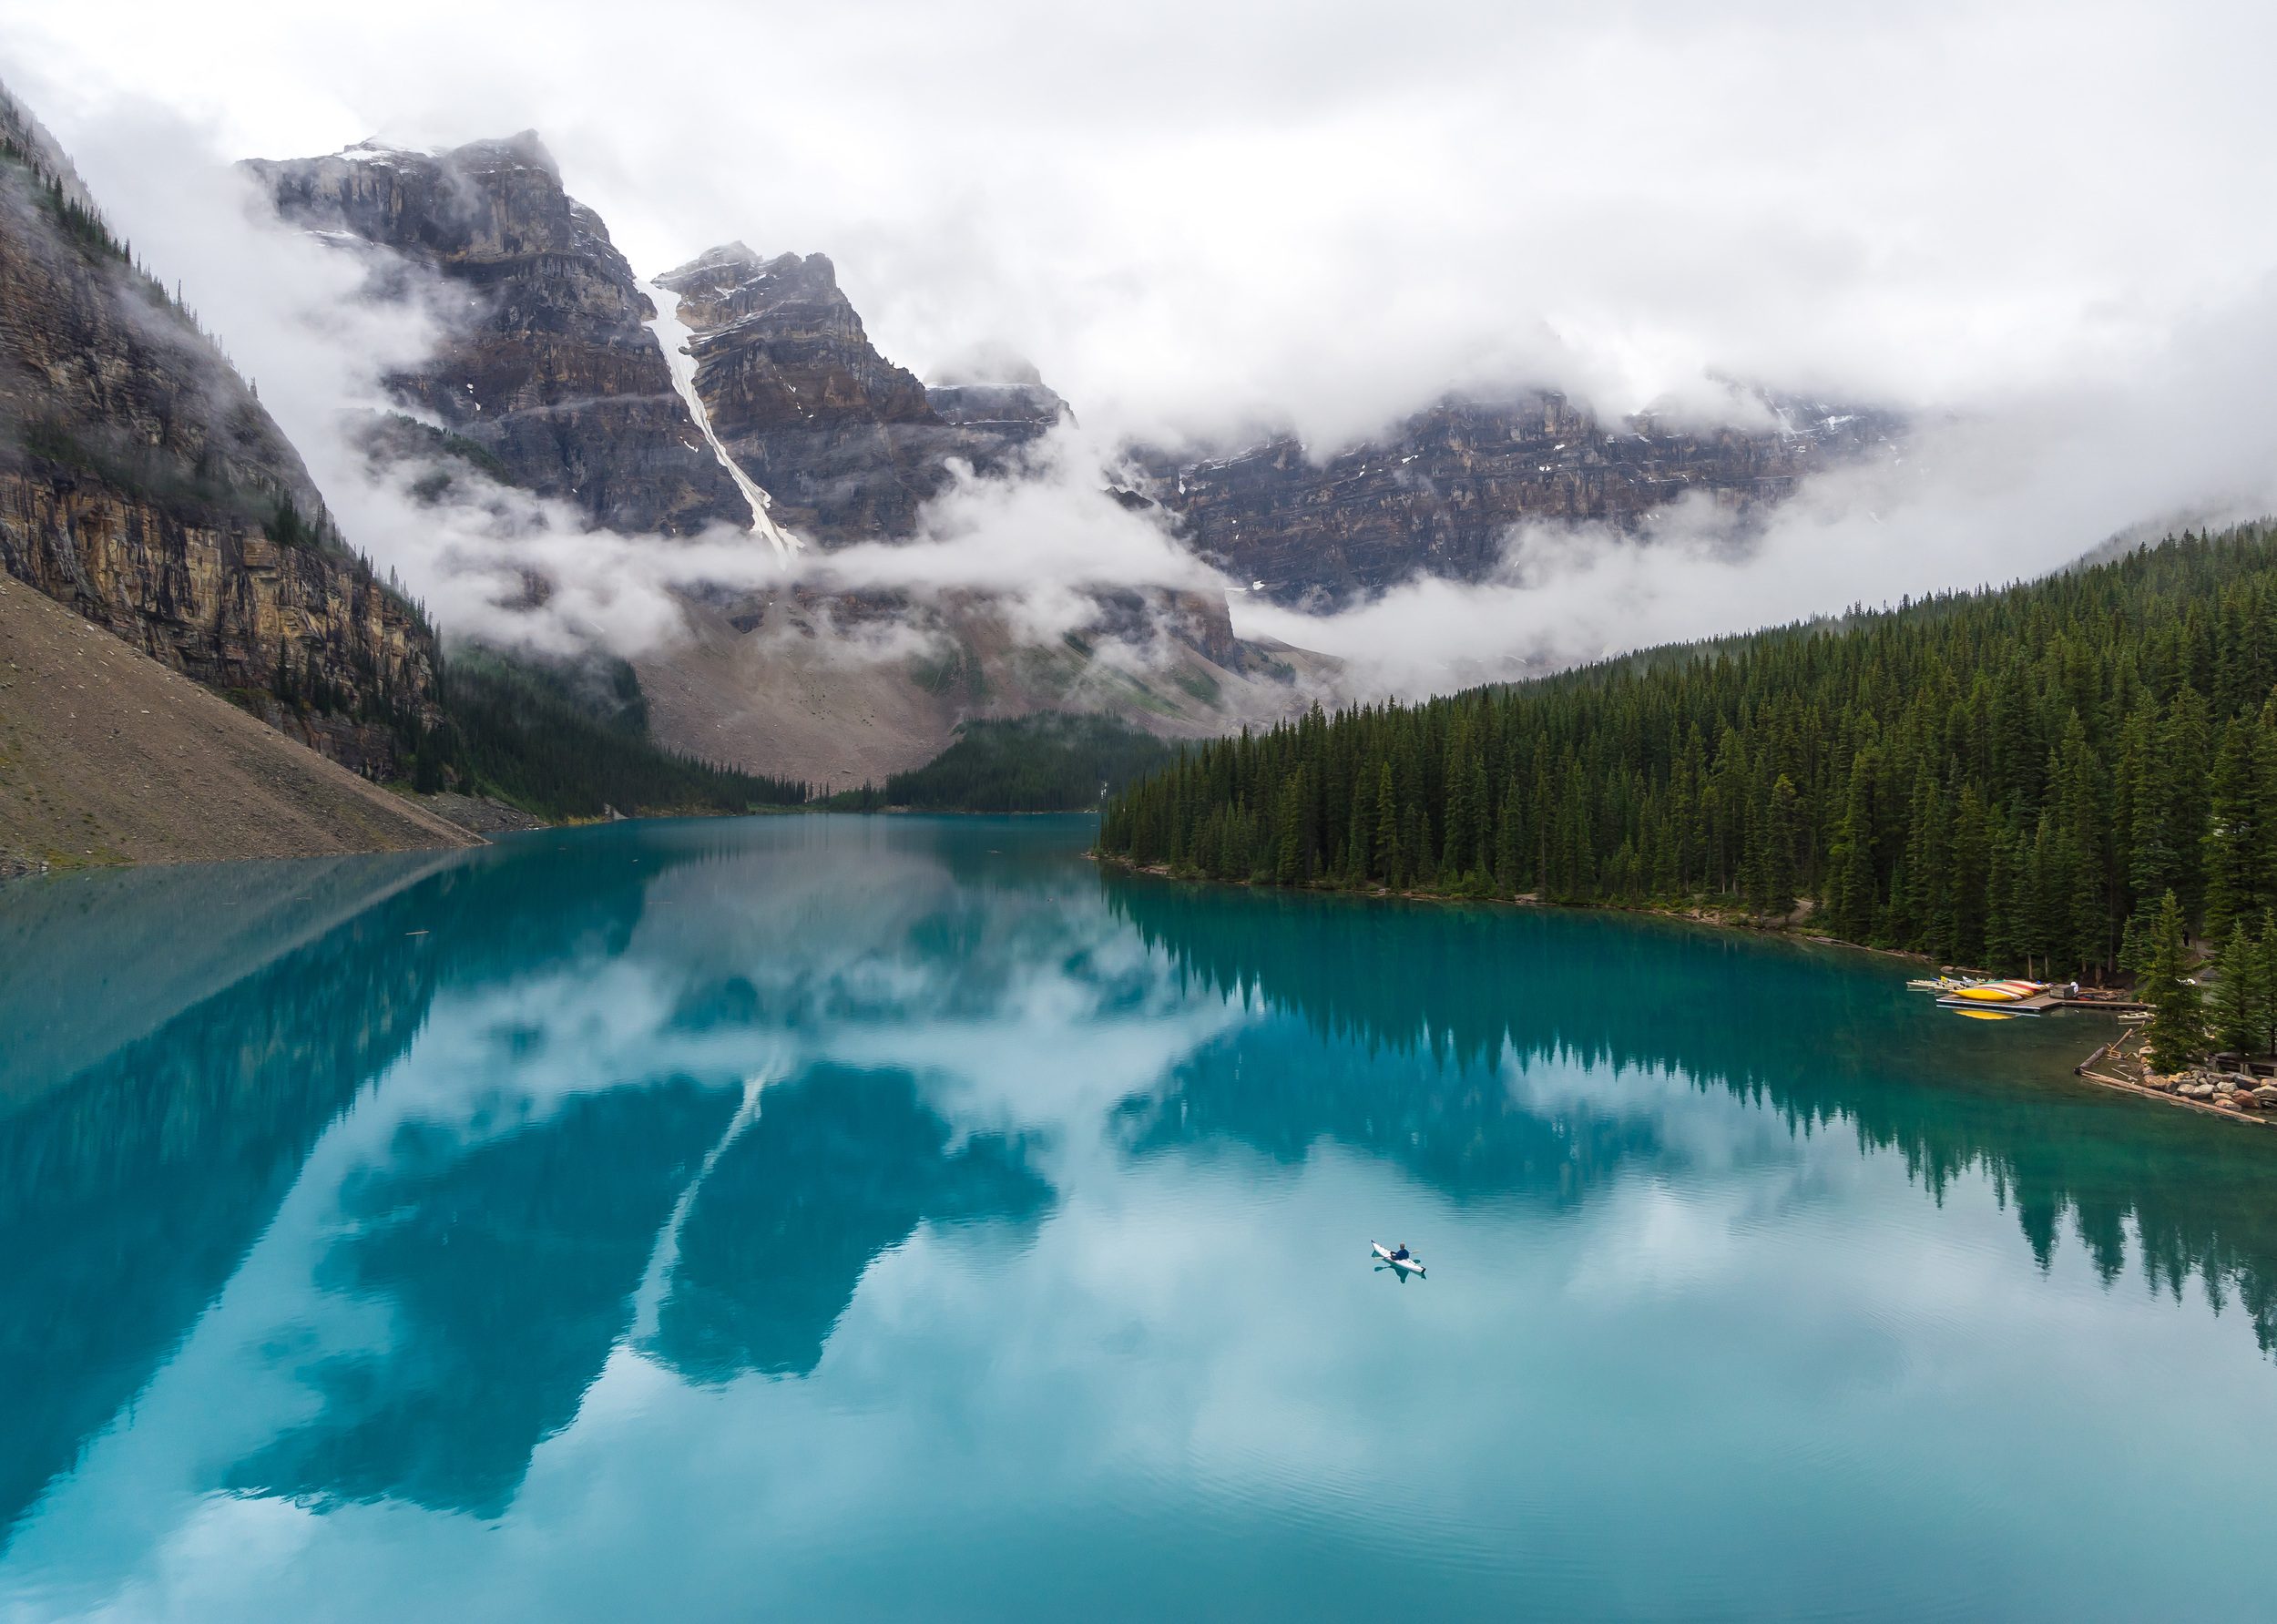 3. Kayaking Moraine Lake: Kayaking on Moraine Lake really allows you to appreciate how grand this lake really is as you get closer to the trademark peaks that tower high above. You'll want to head here early to have it all to yourself.